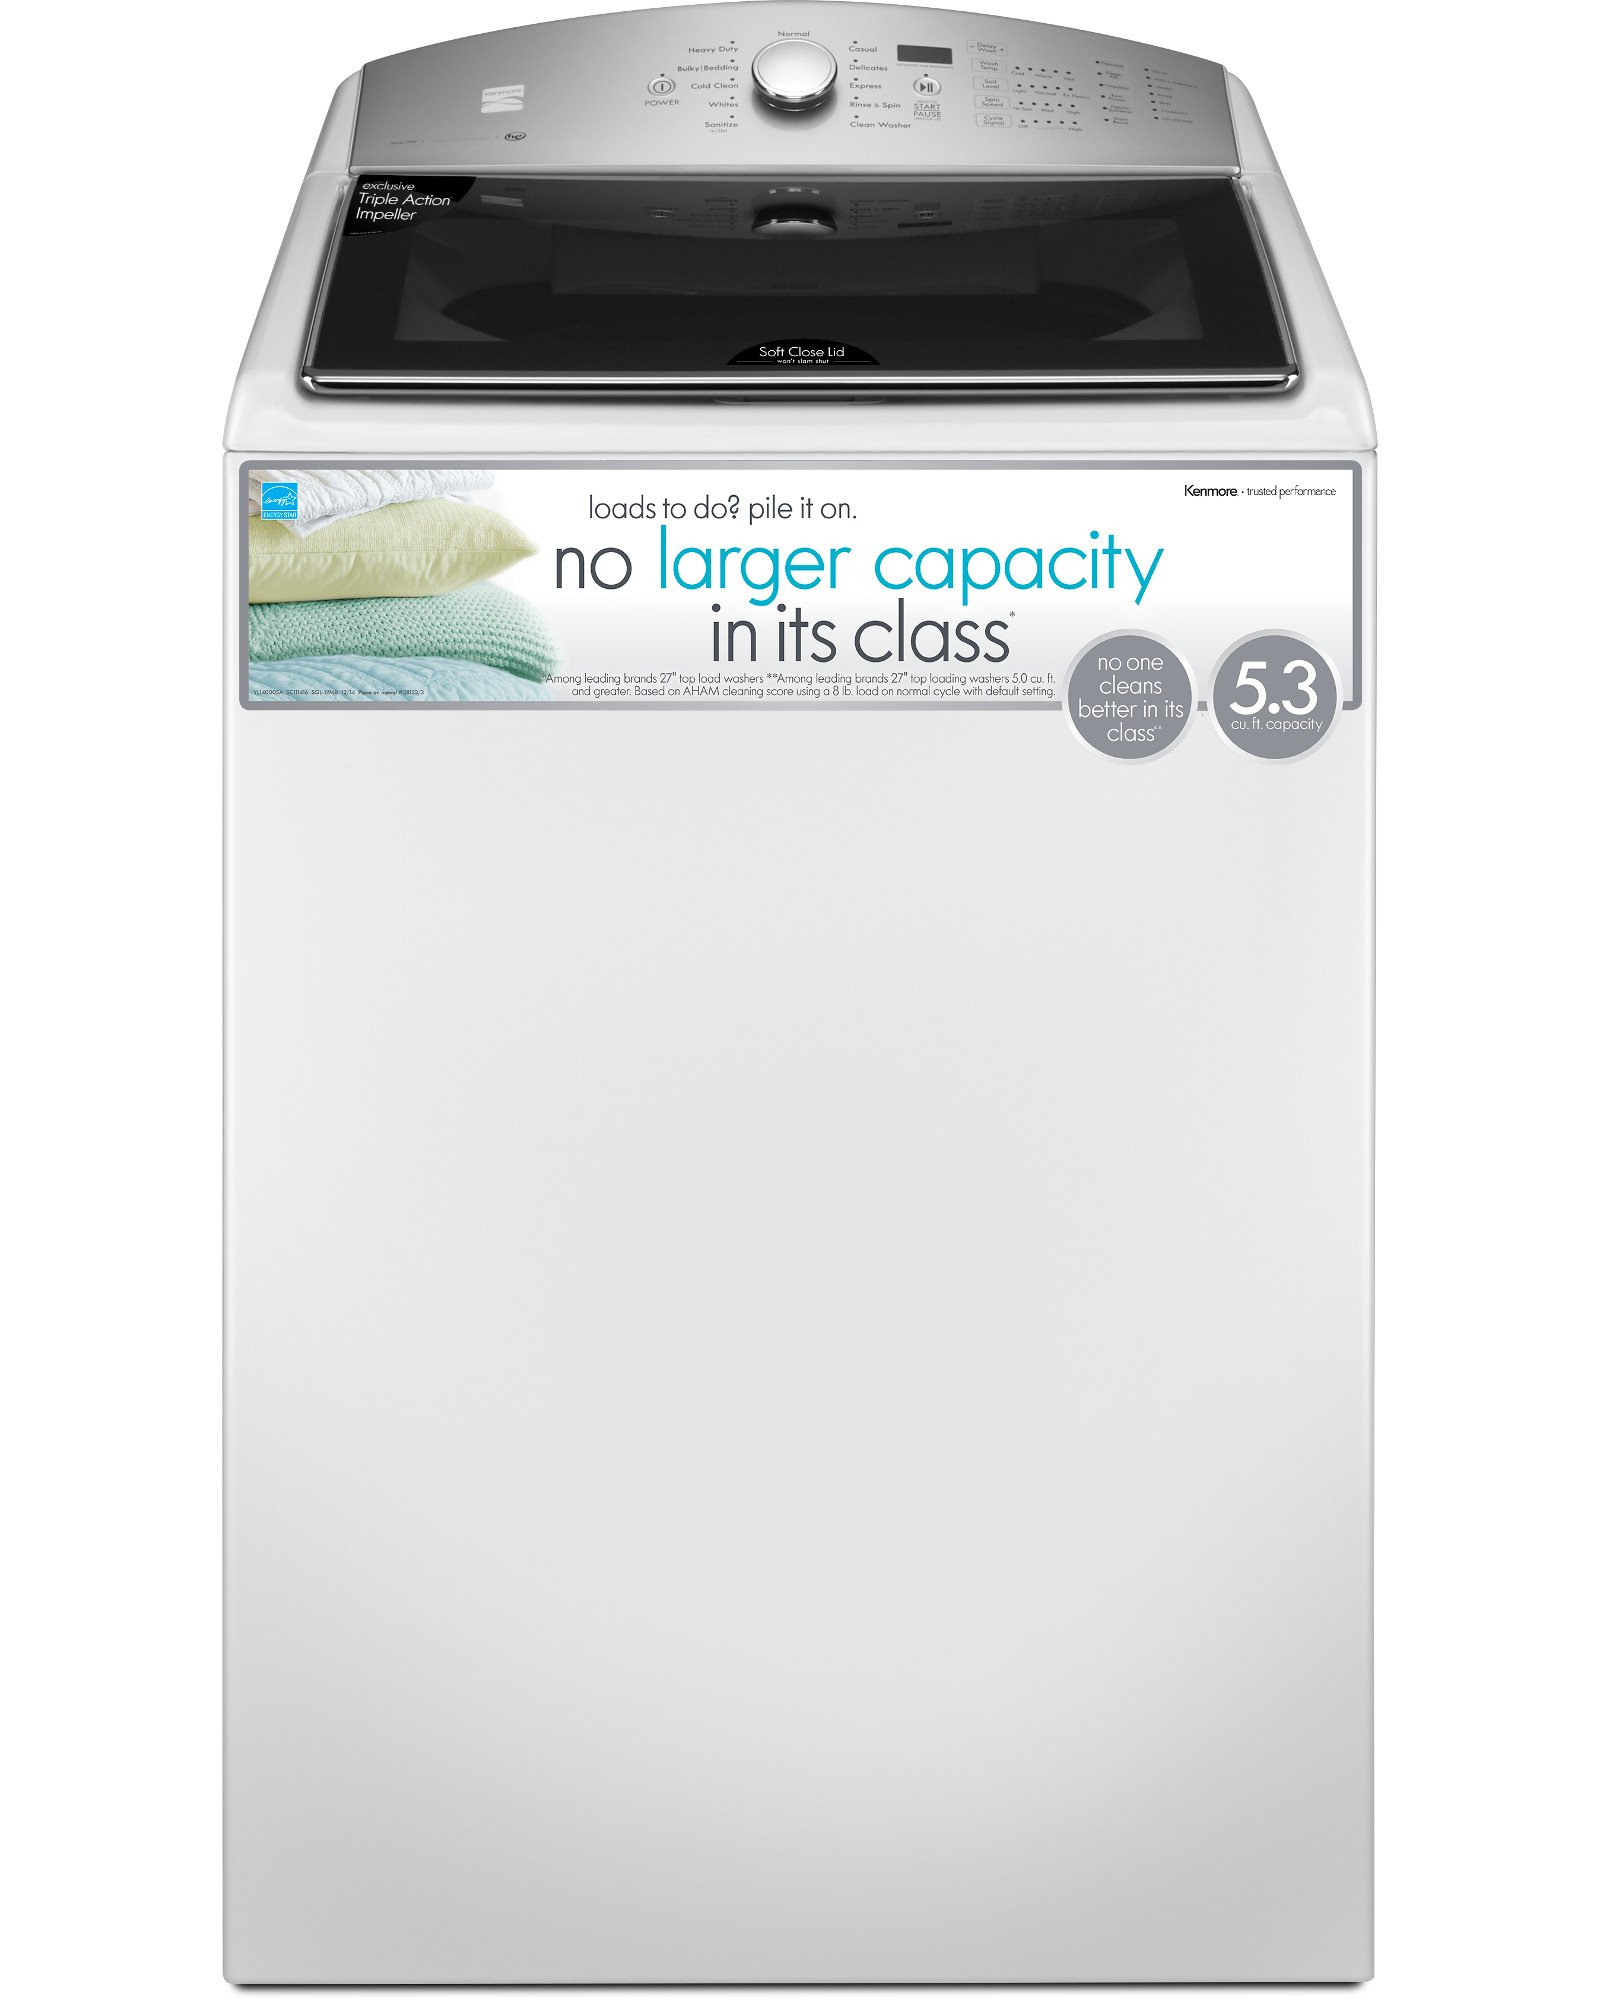 Kenmore 28132 5.3 cu. ft. Top Load Washer in White, includes delivery and hookup (Available in select cities only)